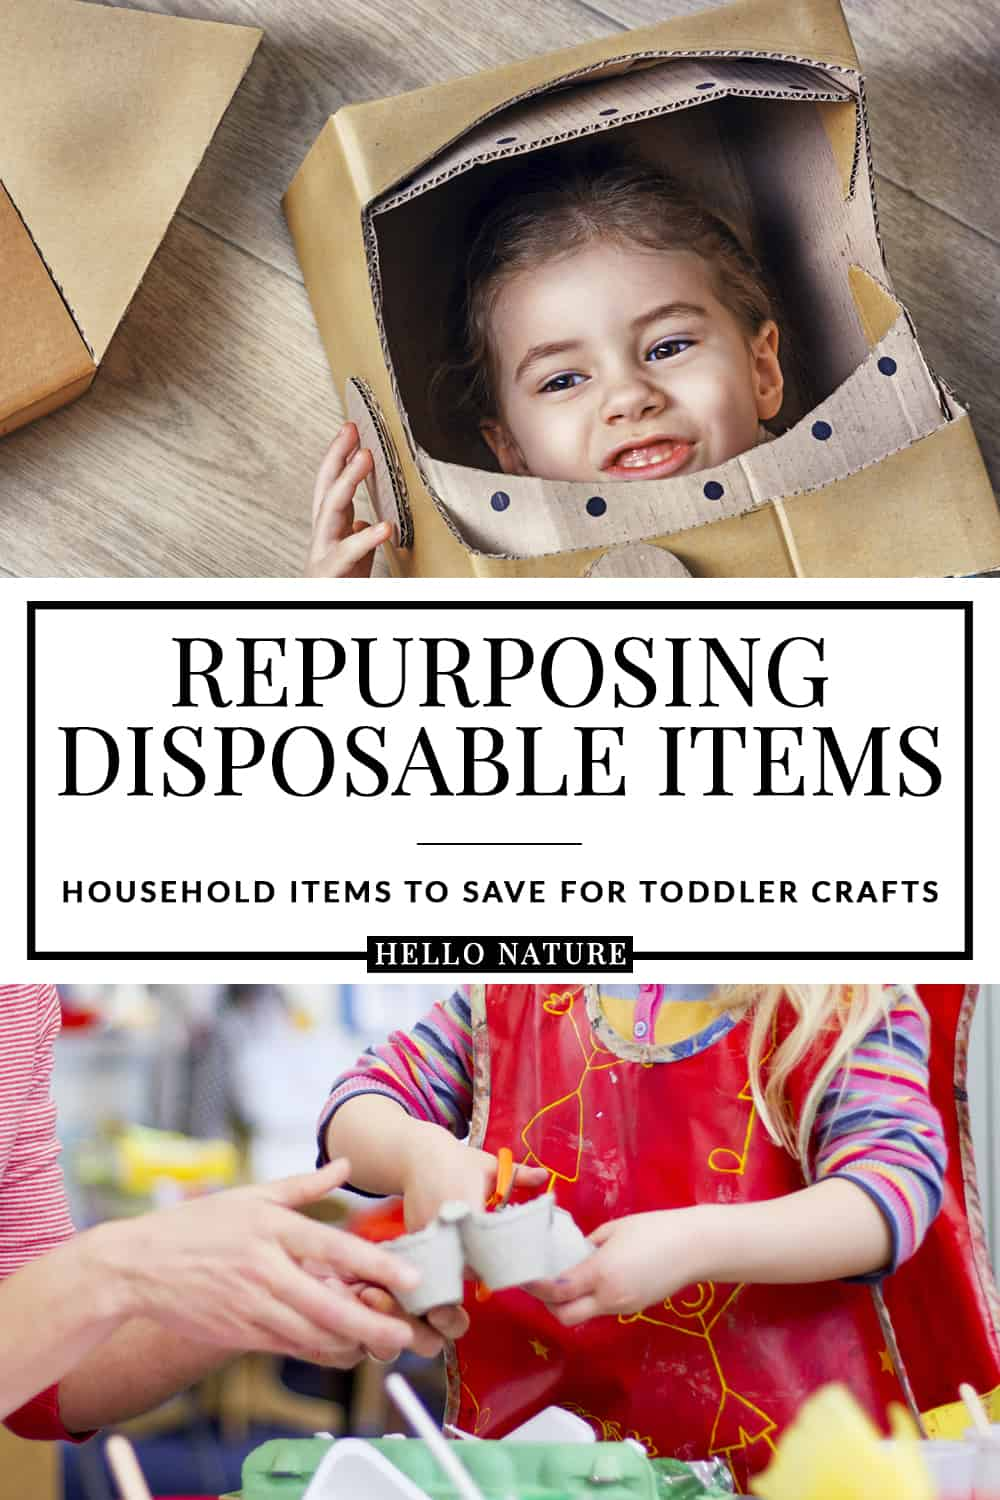 Easy household crafts don't have to be hard, especially if you're looking for crafts with common household items. You'll totally want to repurpose these household items once you see how creative you can be with them! #ad #AllAboardForGlobalGoals #ToddlerCrafts #Upcycling #Repurpose #ReduceReuseRecycle #UpcycledCrafts